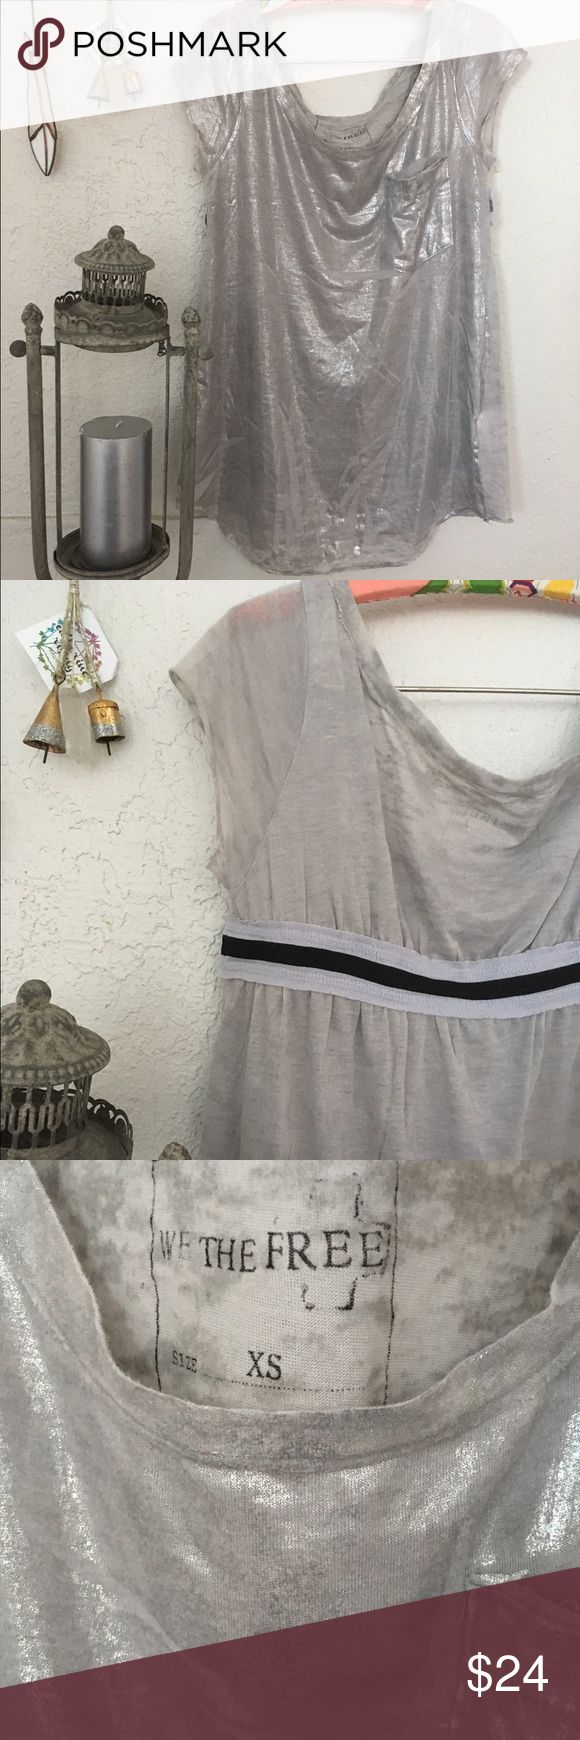 Free People Metallic Silver Tee Super cute top the front is all metallic textured with a cute pocket and the back has an elastic line that make the top unique!!!wear it up with a free people slip or down with your denims Free People Tops Tees - Short Sleeve